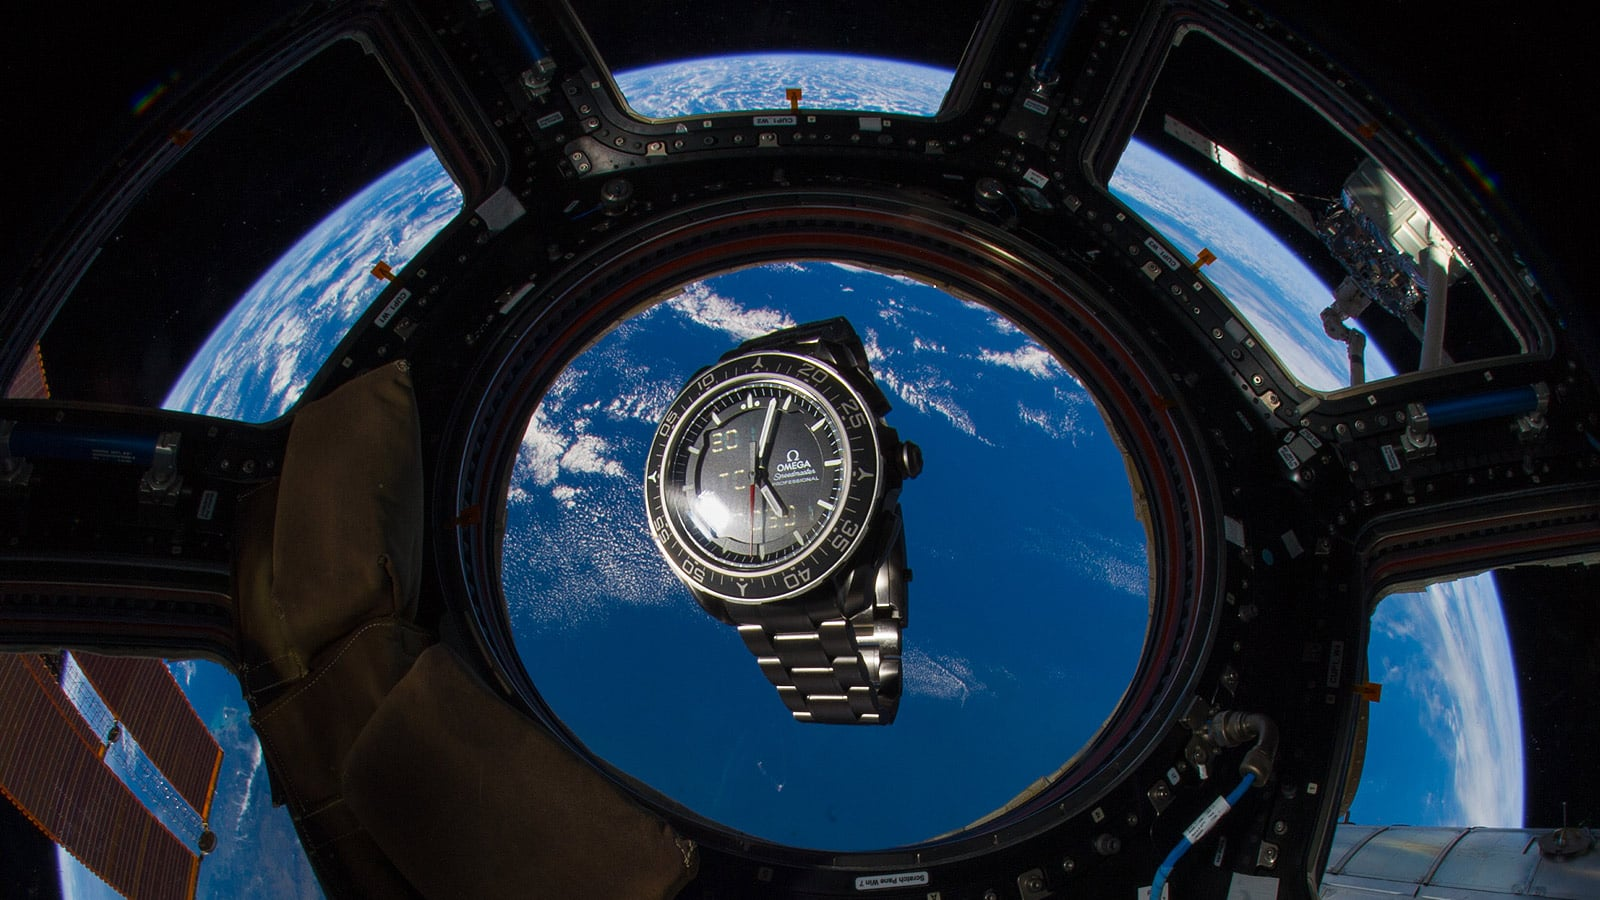 Omega and the world of space exploration - 슬라이드 3 - 34067